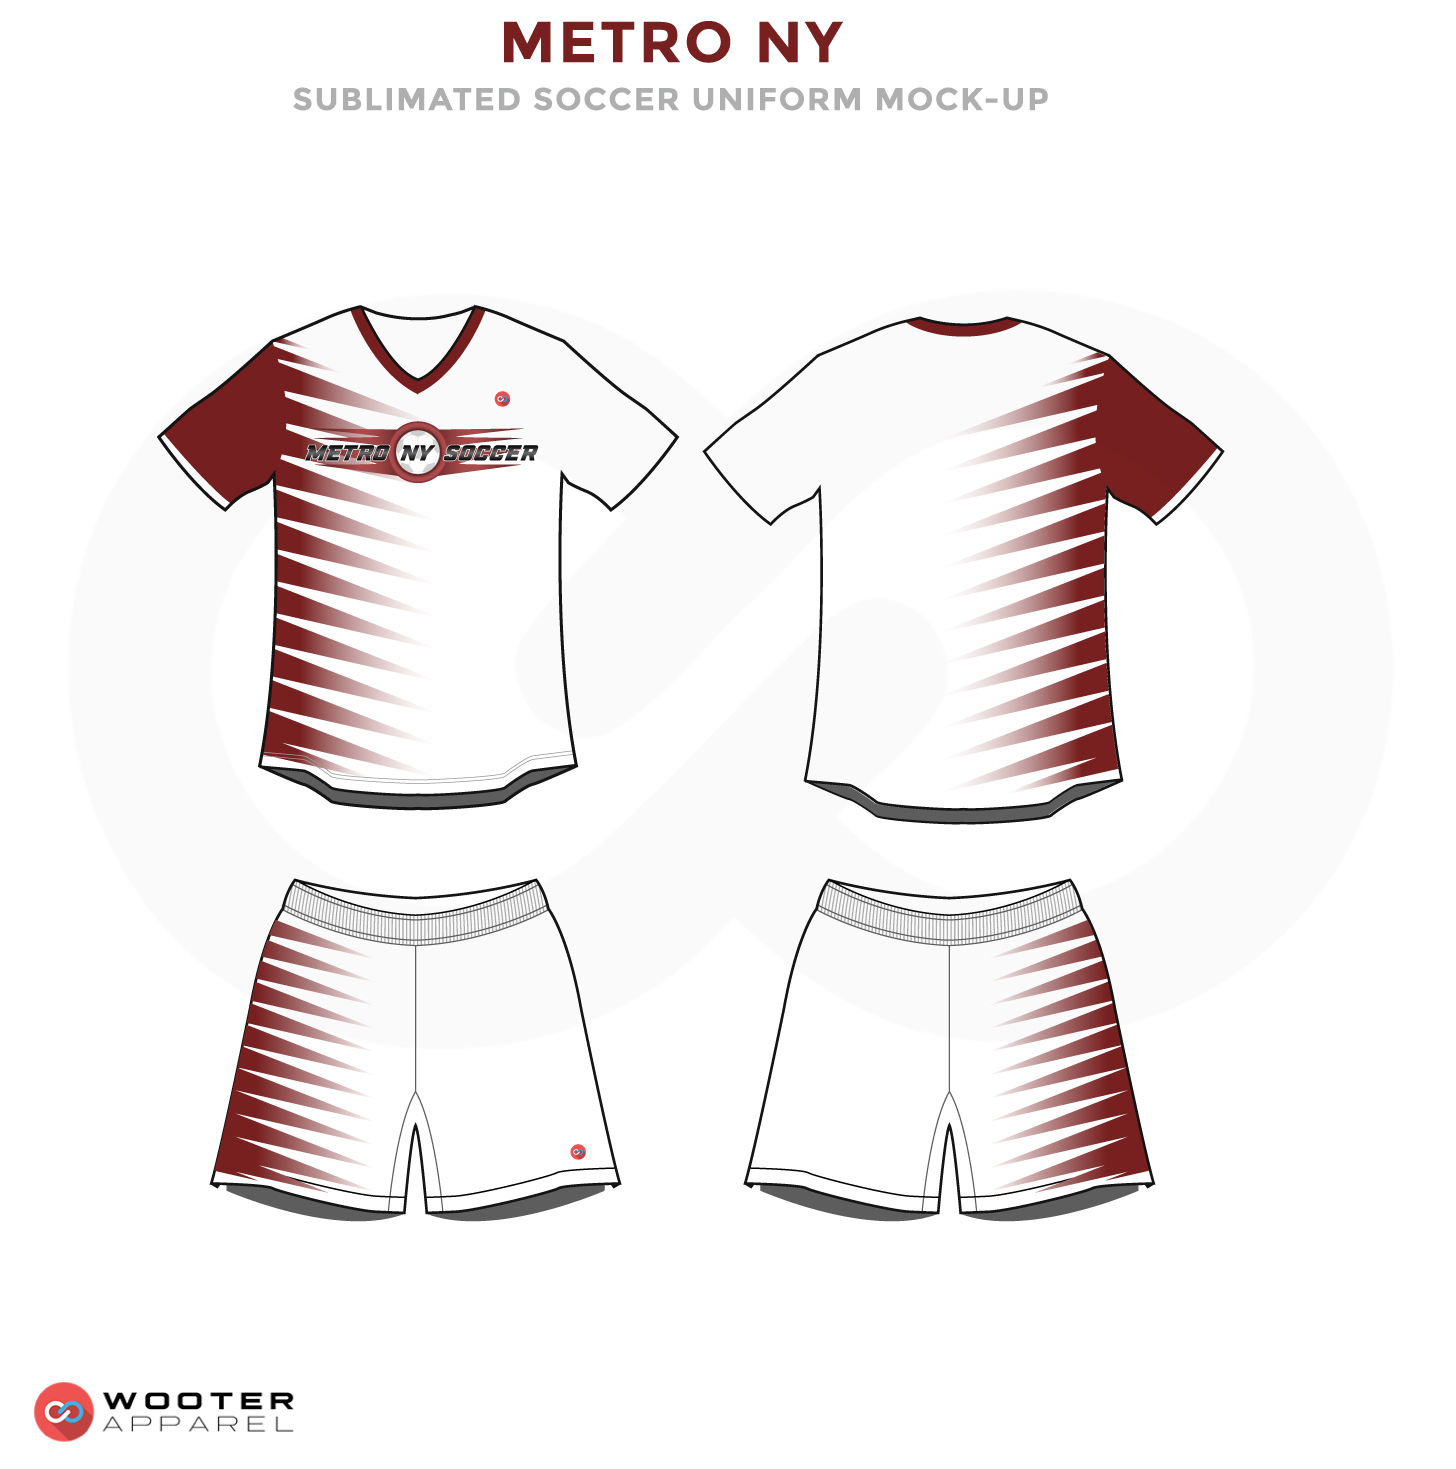 Metro NY Red Maroon and White Soccer Uniform, Jersey and Shorts